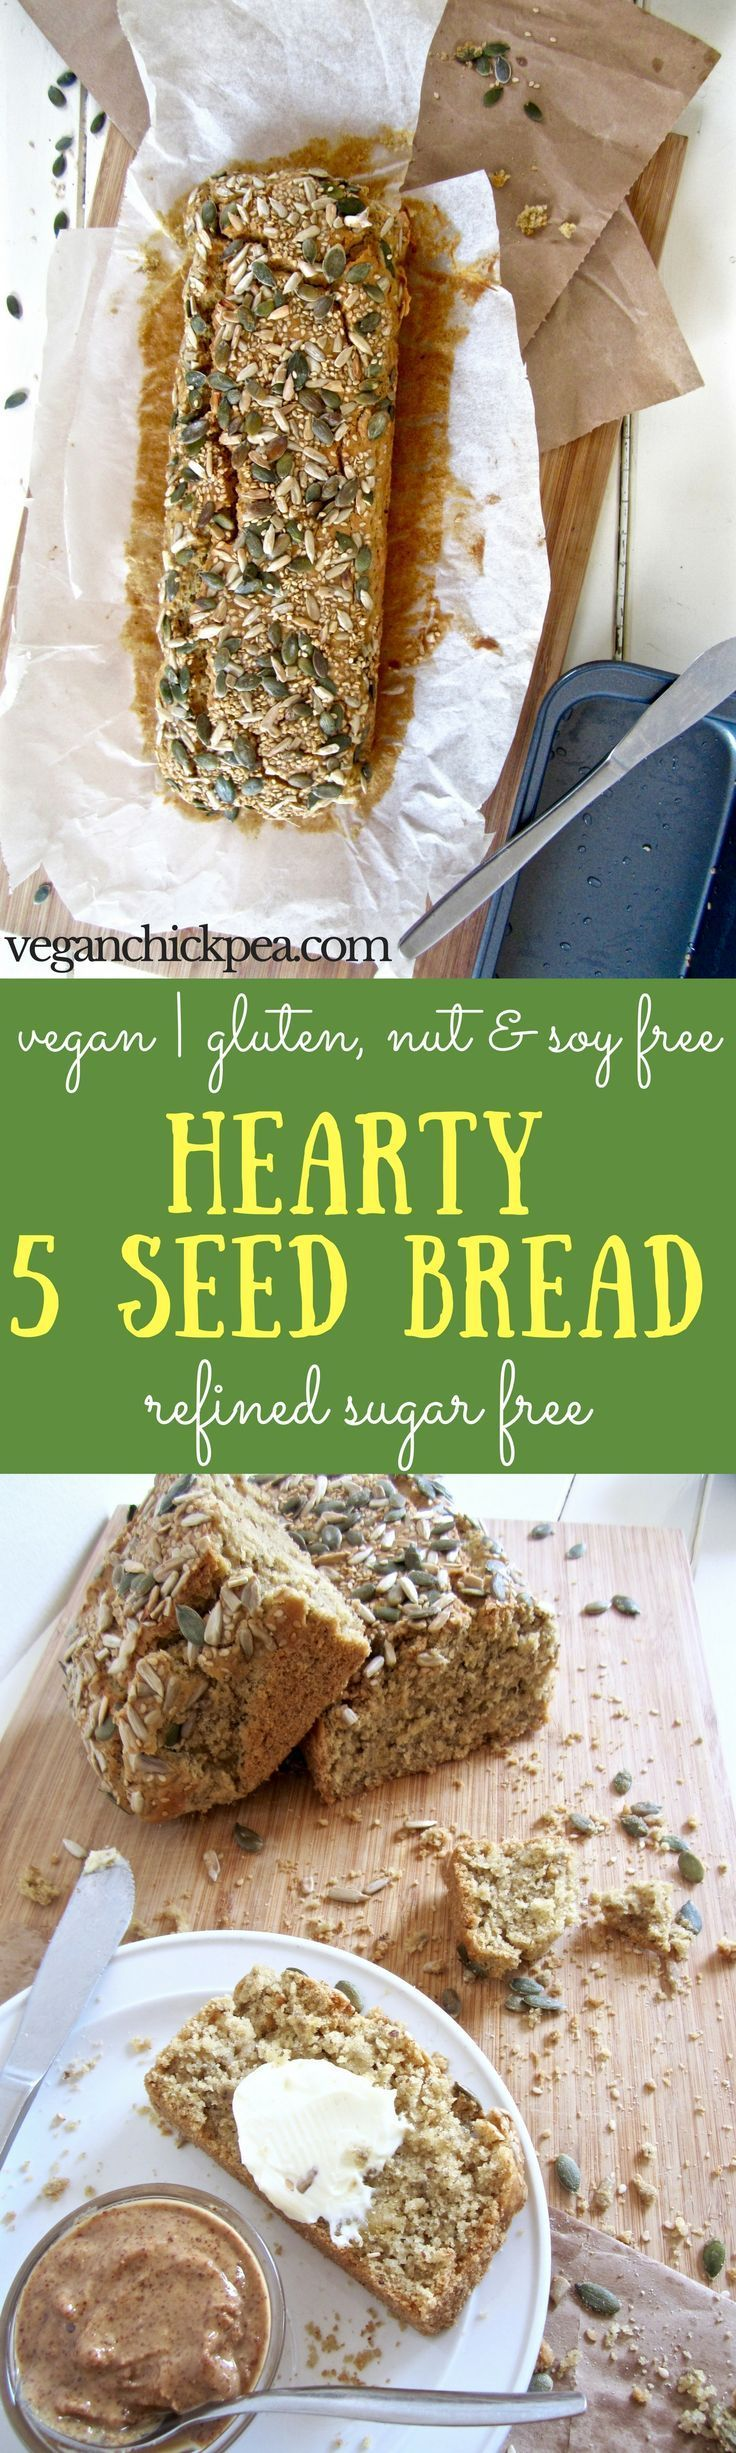 Hearty 5 Seed Bread recipe - a go-to, everyday bread that is vegan, gluten, nut & refined sugar free! Ideal for breakfast, lunch or snacking.